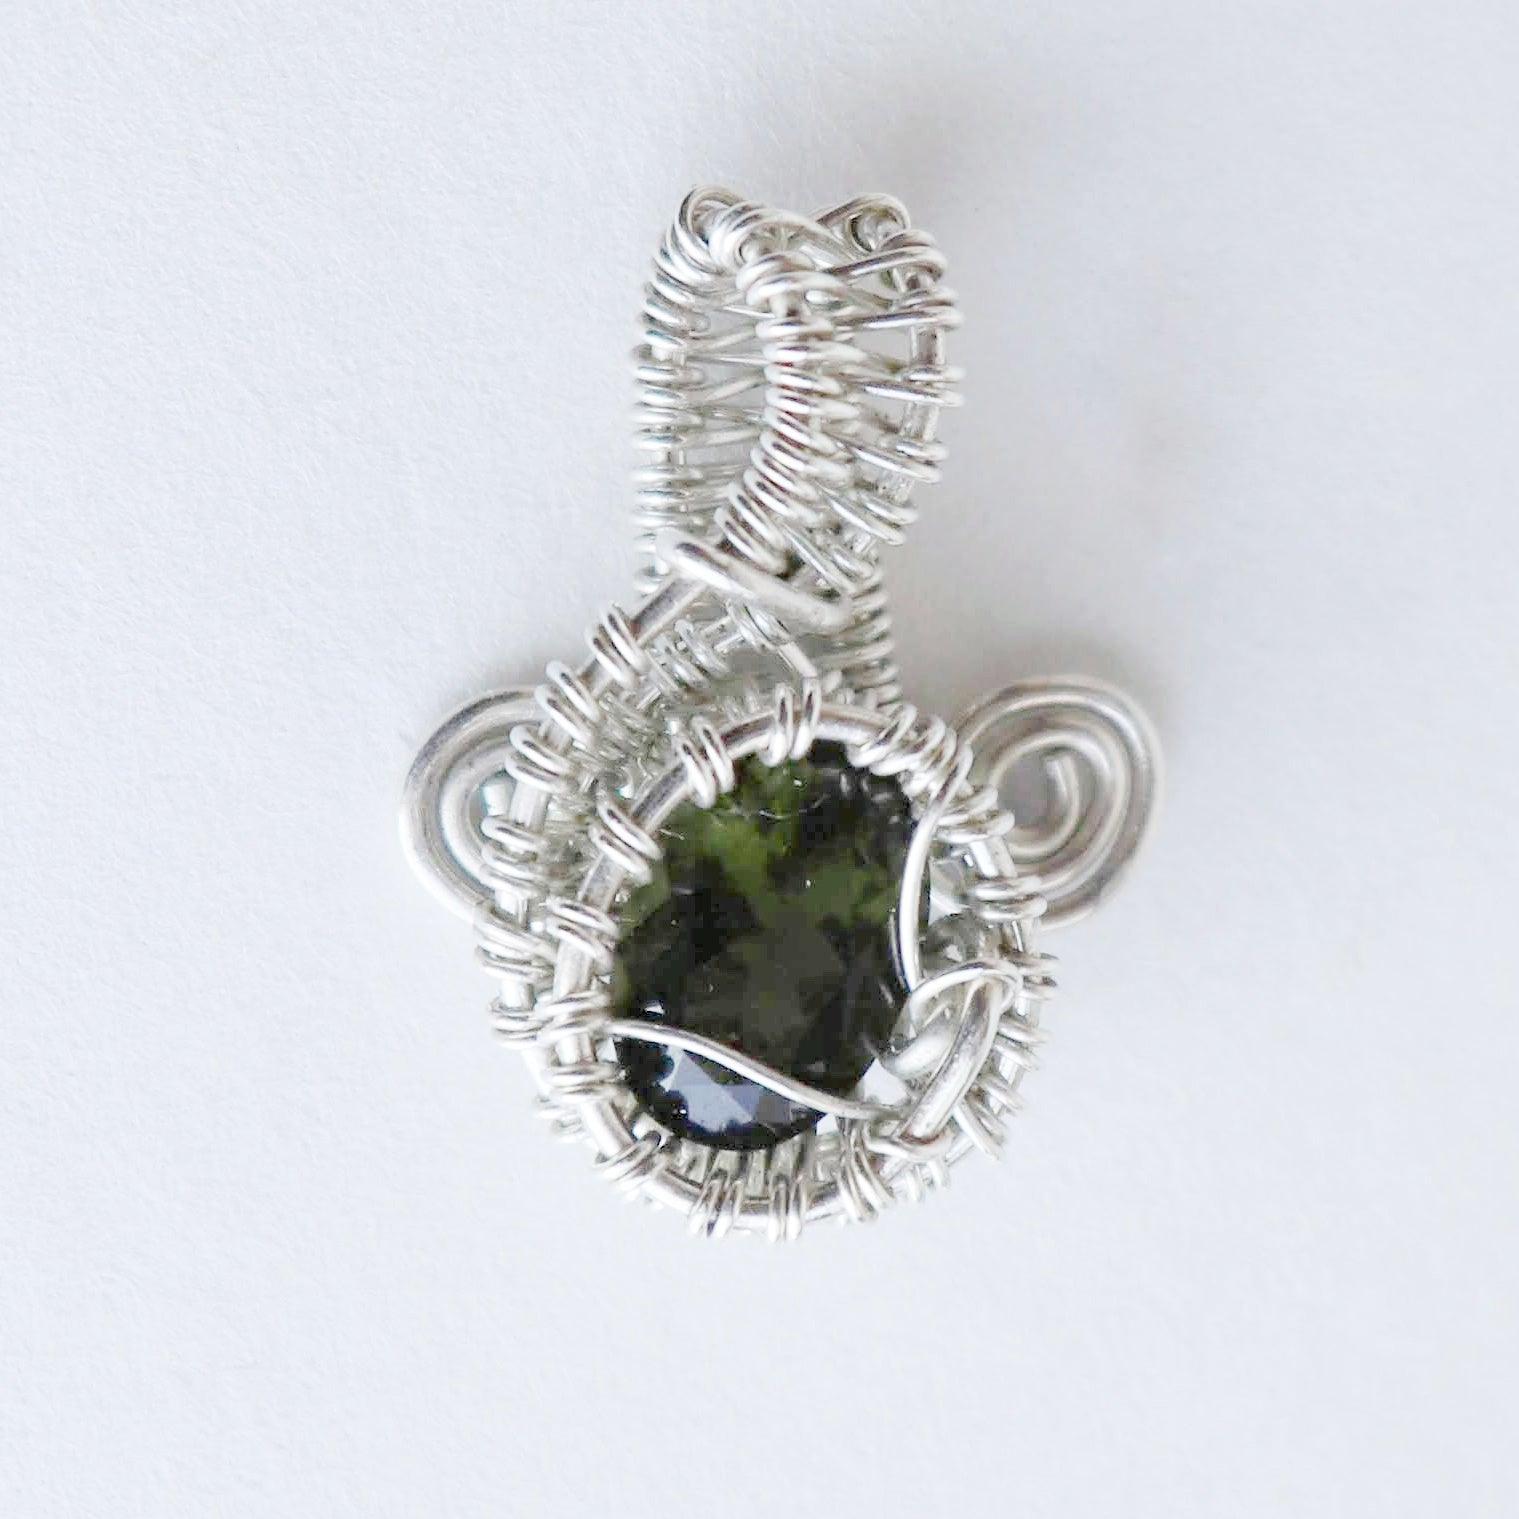 Heartfelt Melody - Faceted Moldavite Gem & .925 Sterling Silver Pendant